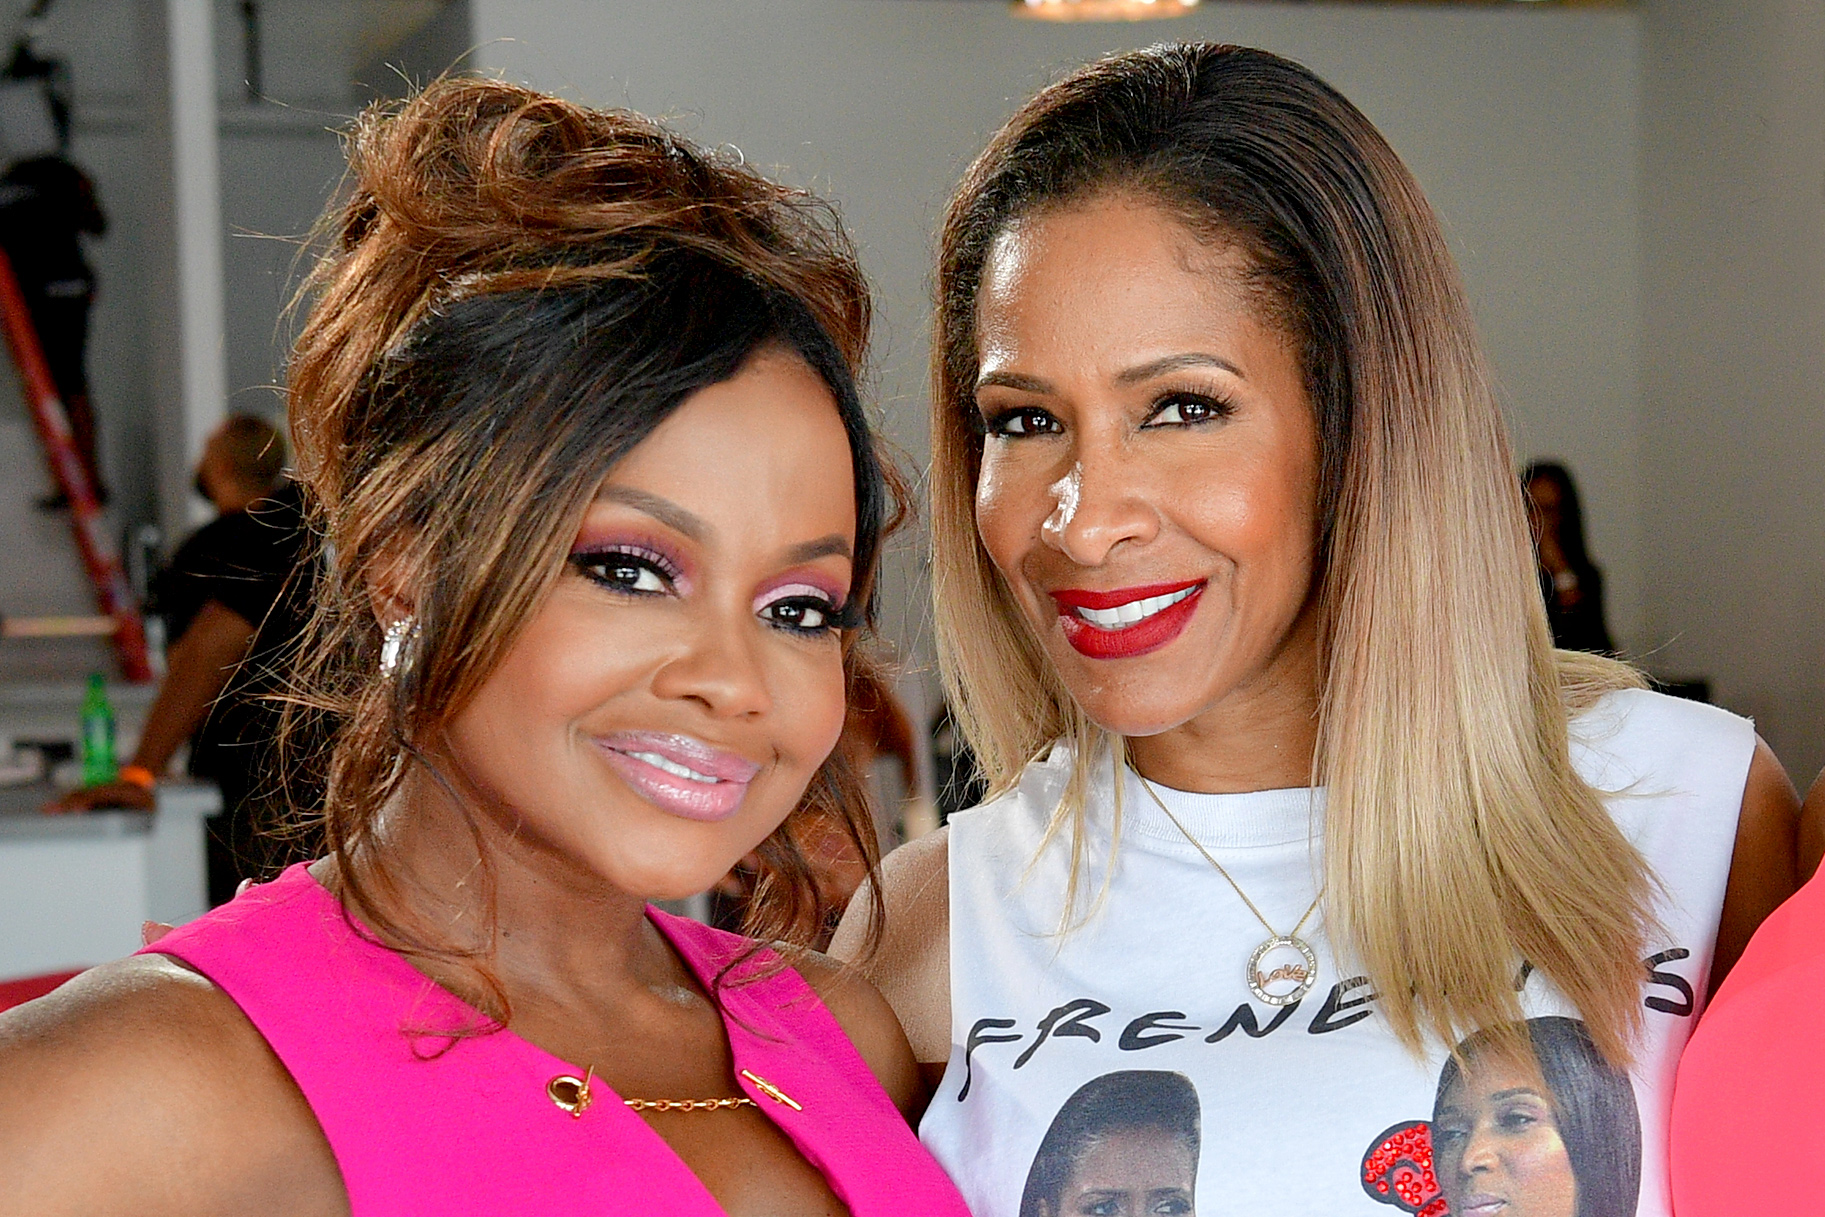 RHOA Headed For Cast Shakeup — All Eyes On Phaedra Parks And Sheree Whitfield